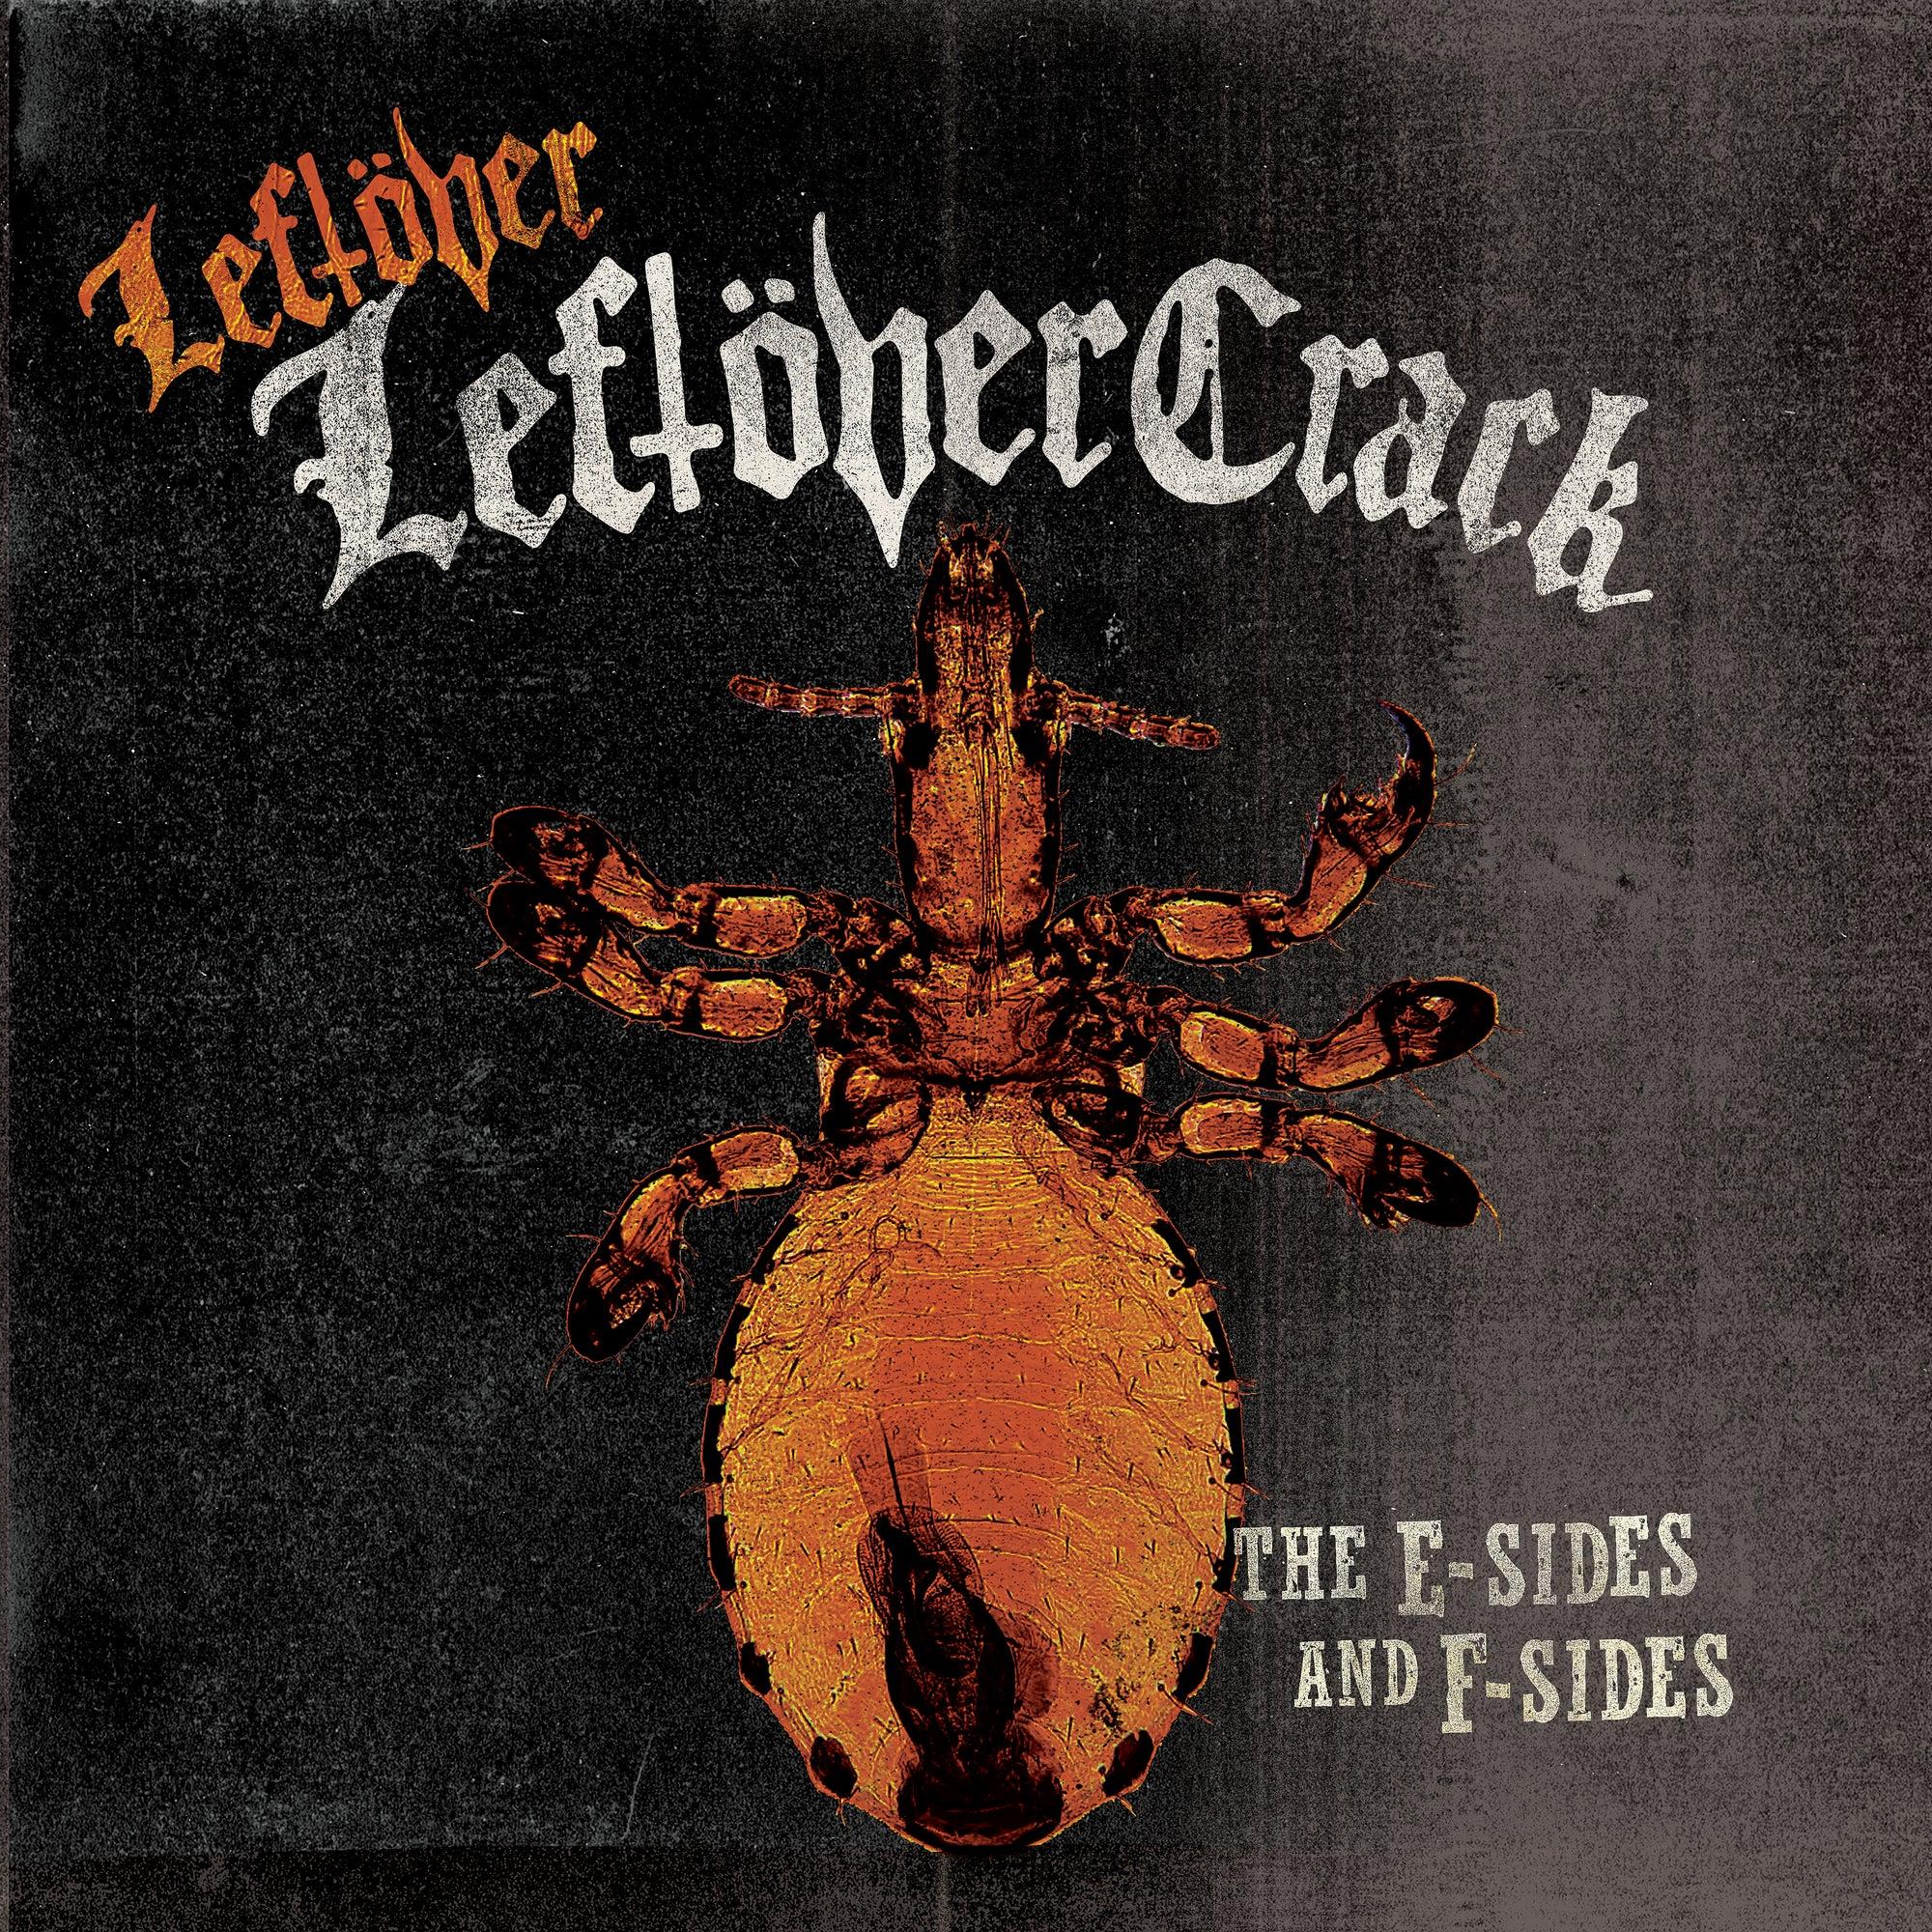 Leftover Leftover Crack: The E-Sides and F-sides